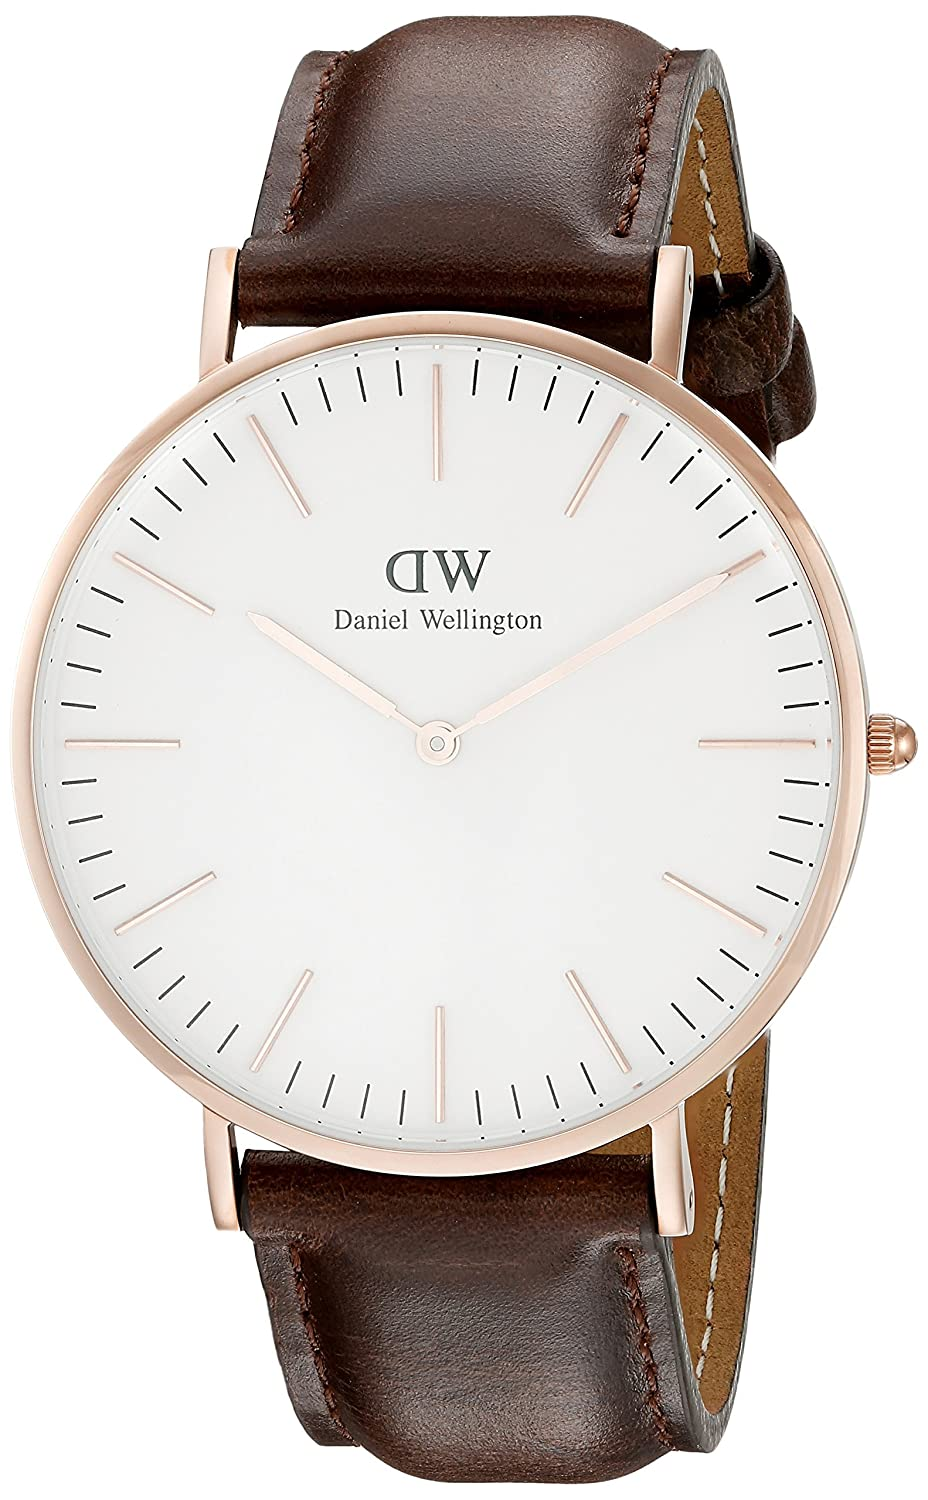 Ben noto Daniel Wellington Men's Brown/White Leather Watch: Daniel  MP09